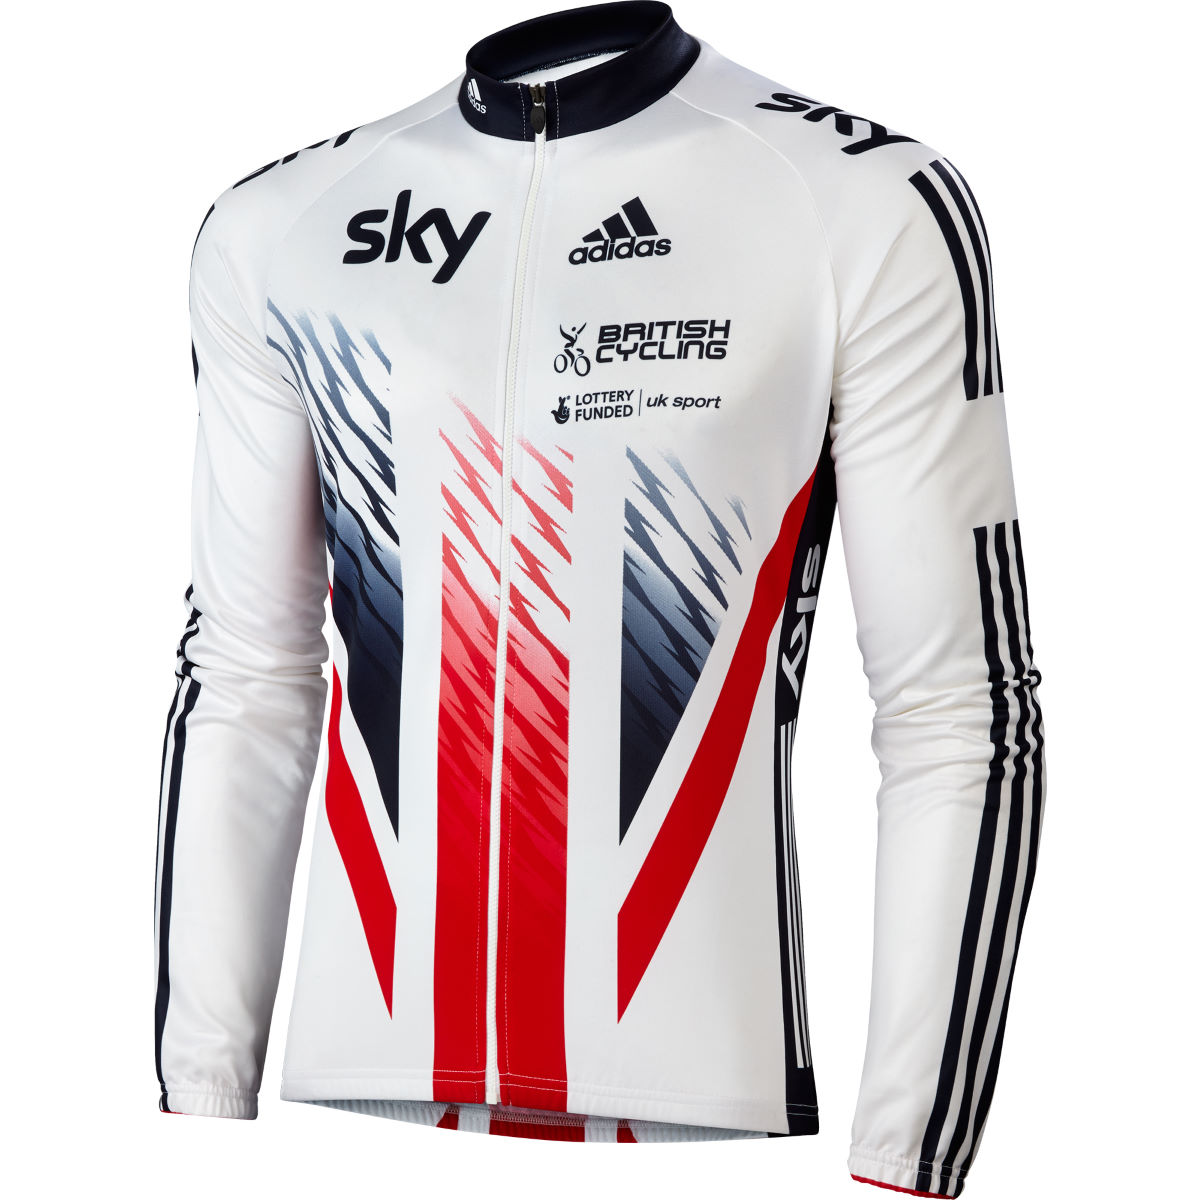 Adidas Cycling British Cycling Long Sleeve Jersey